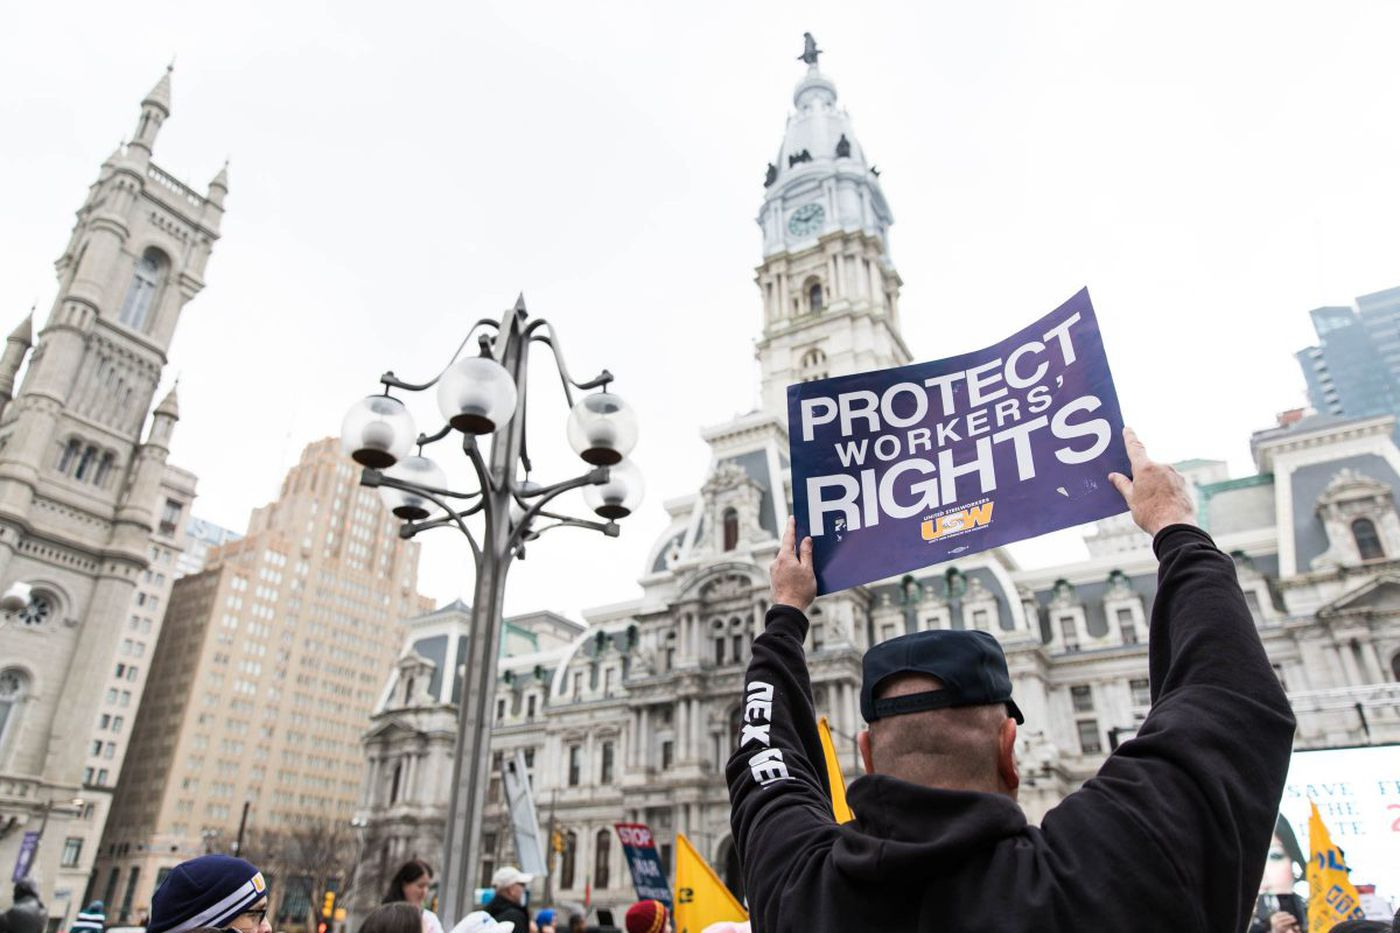 As Supreme Court case looms, labor supporters rally in Philly